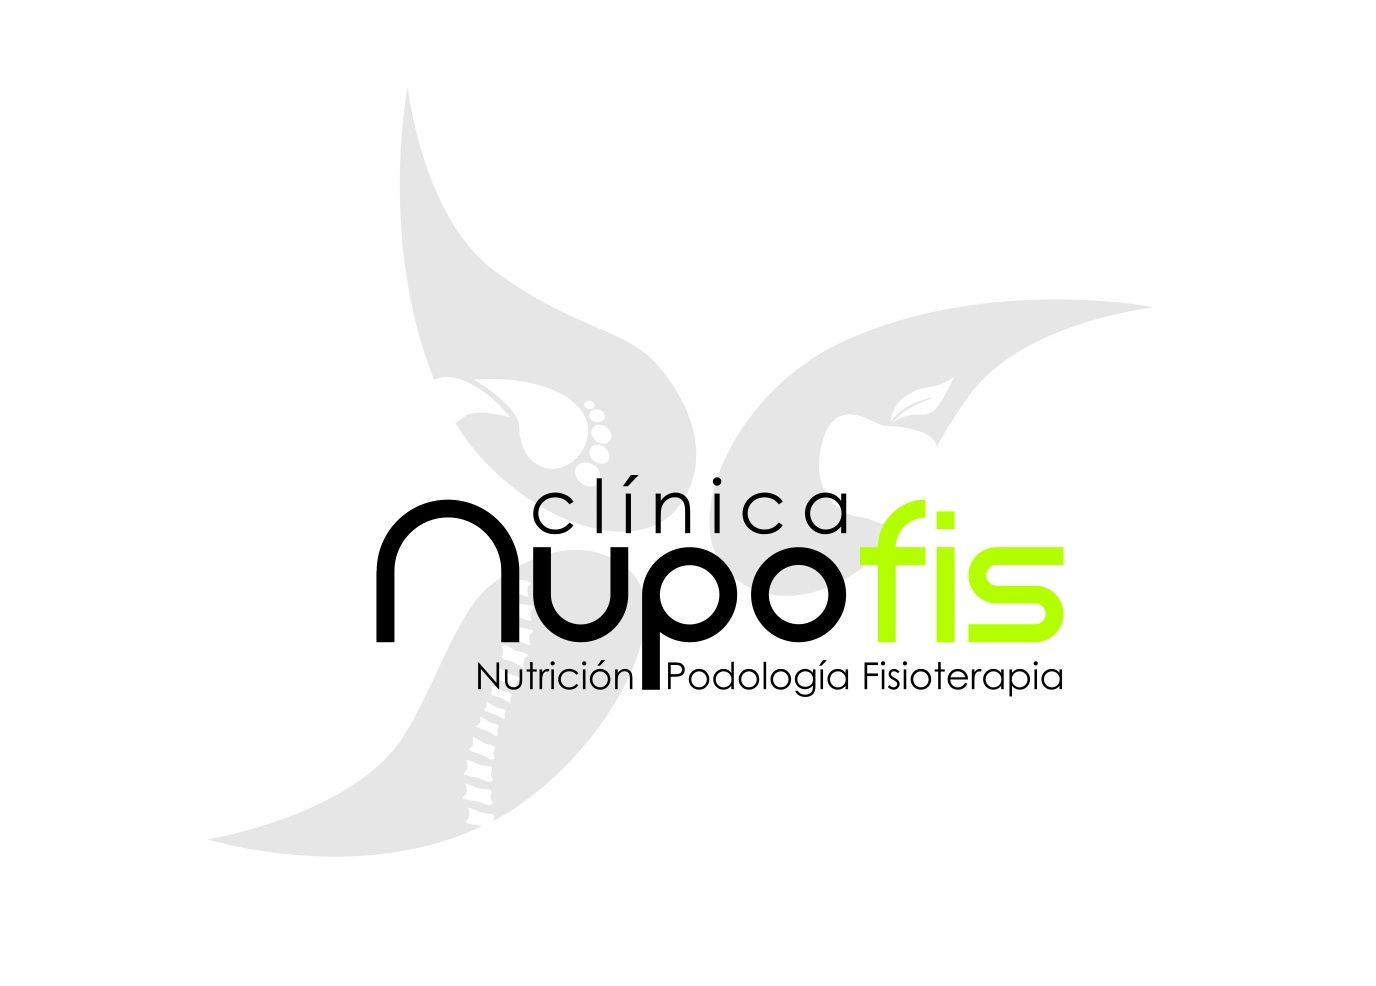 Blog de Clinica Nupofis